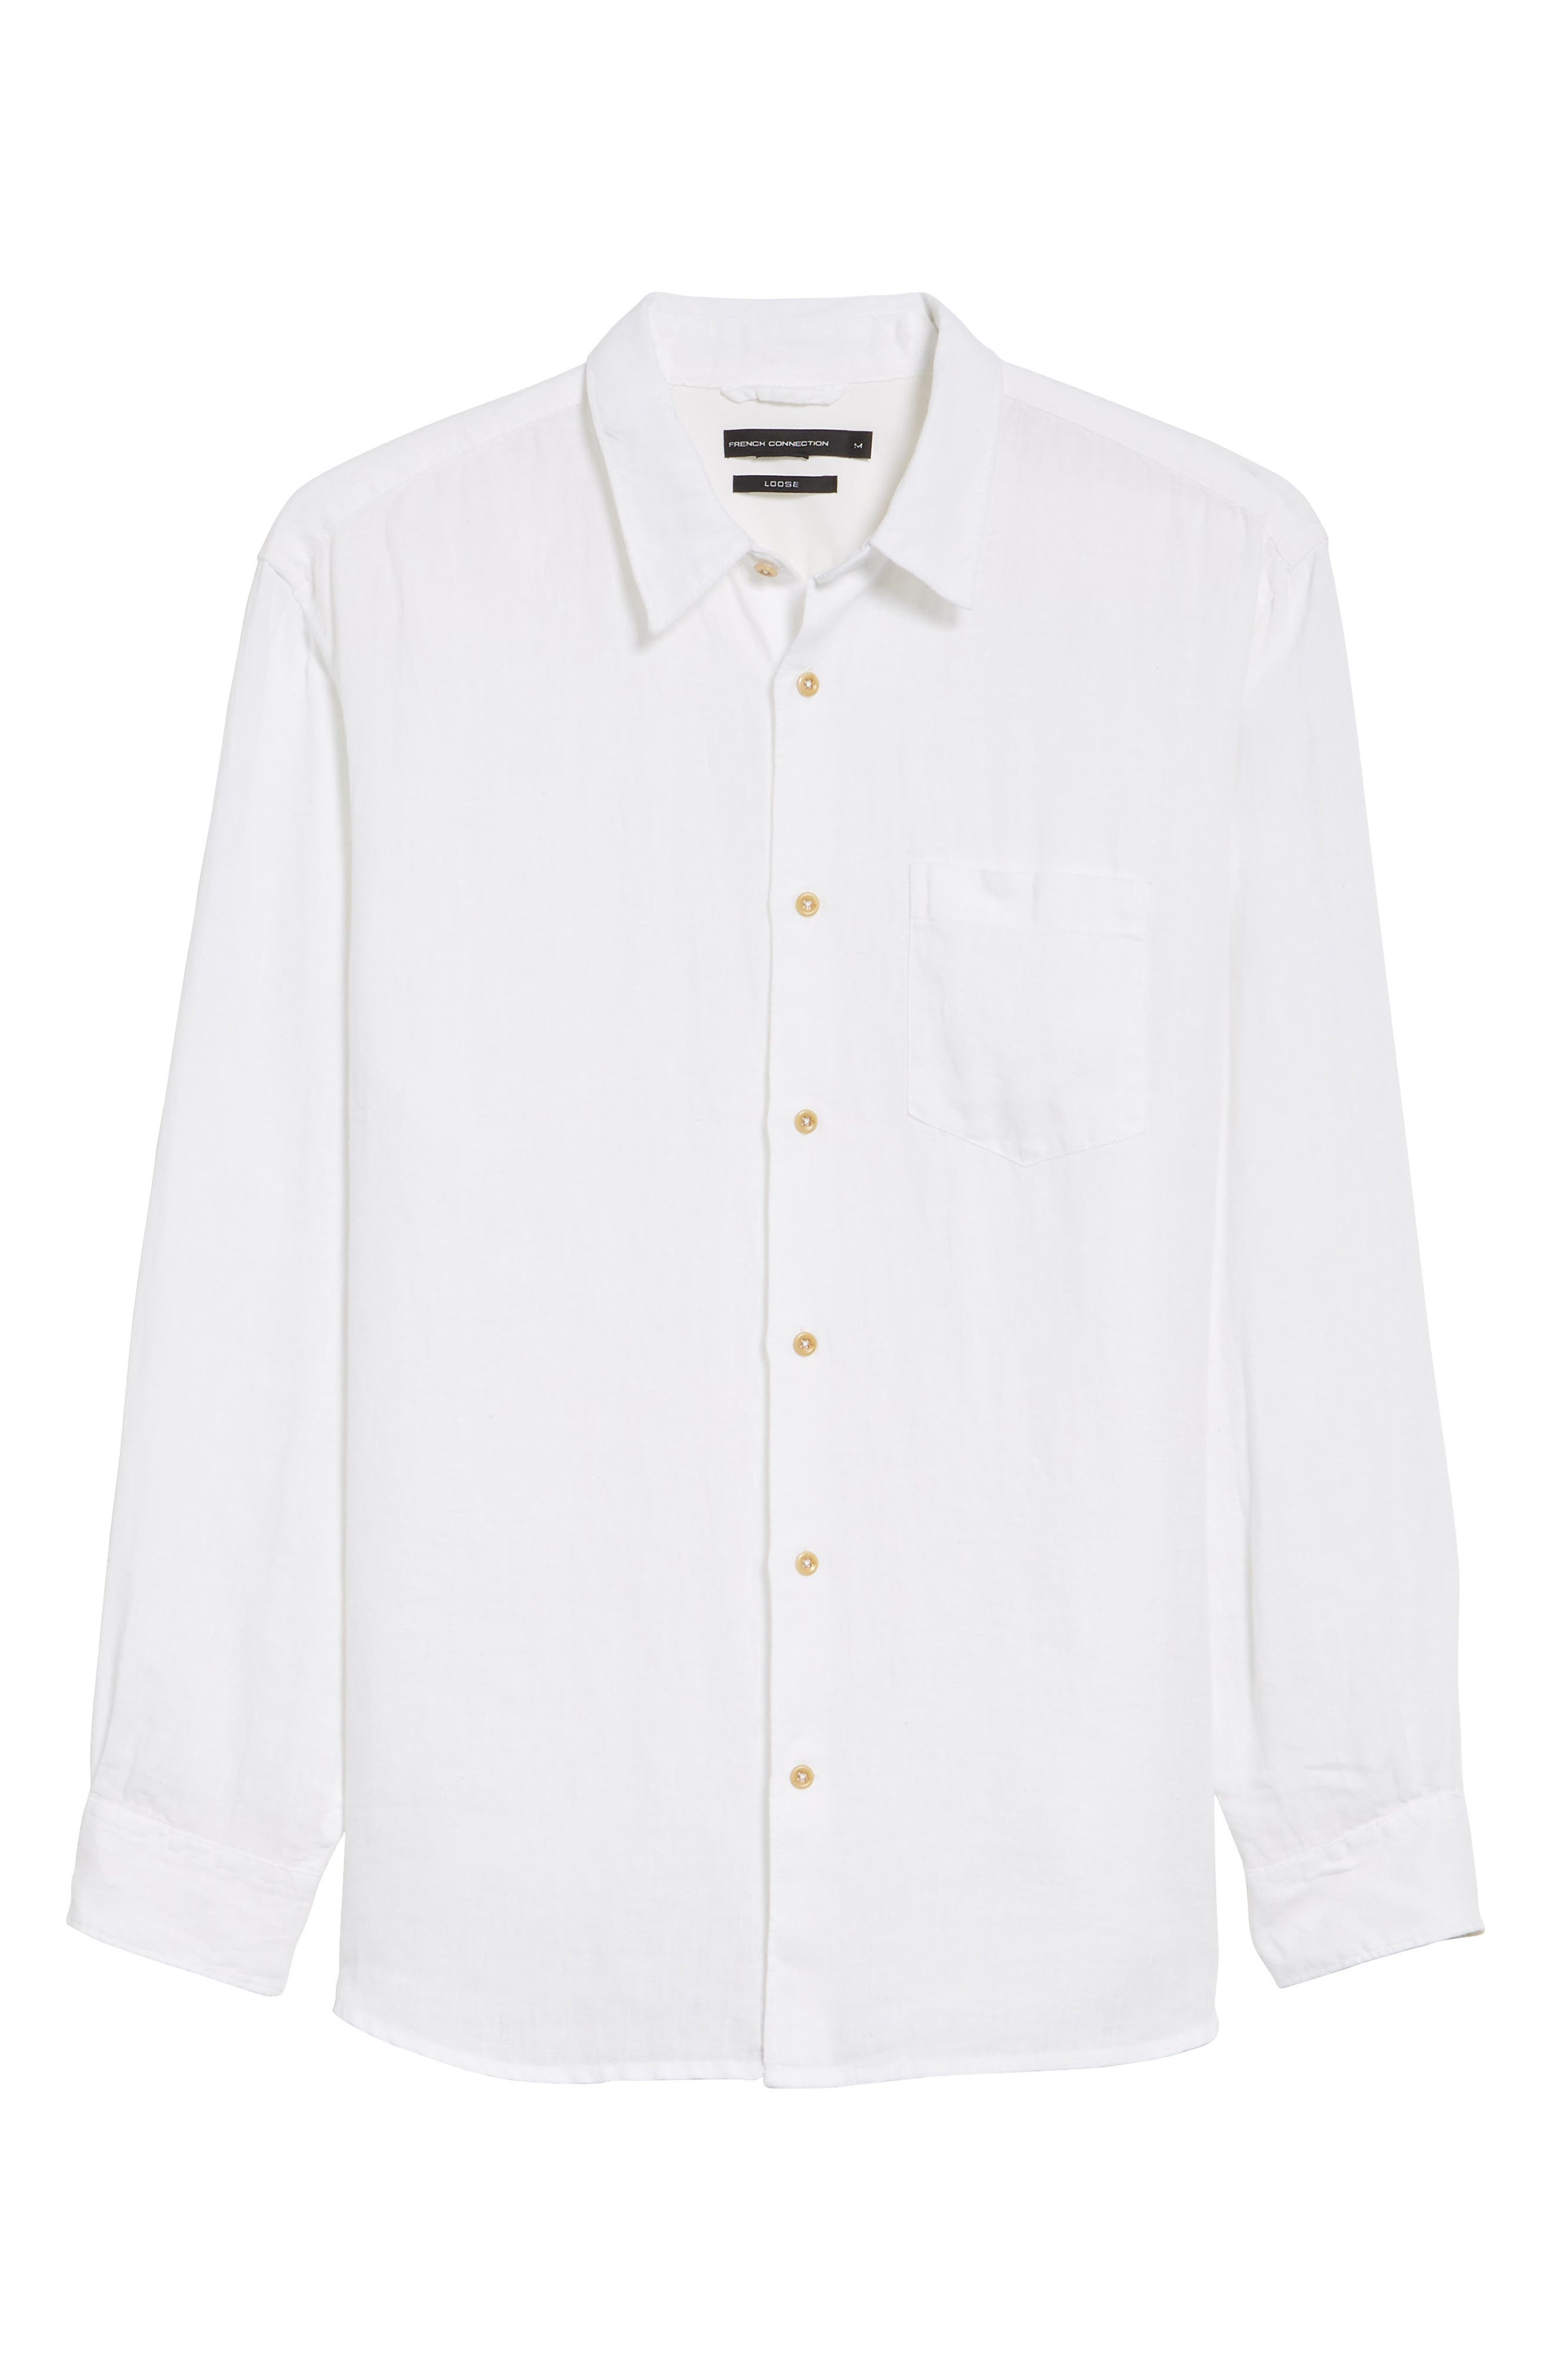 Relaxed Fit Solid Linen Sport Shirt,                             Alternate thumbnail 6, color,                             White